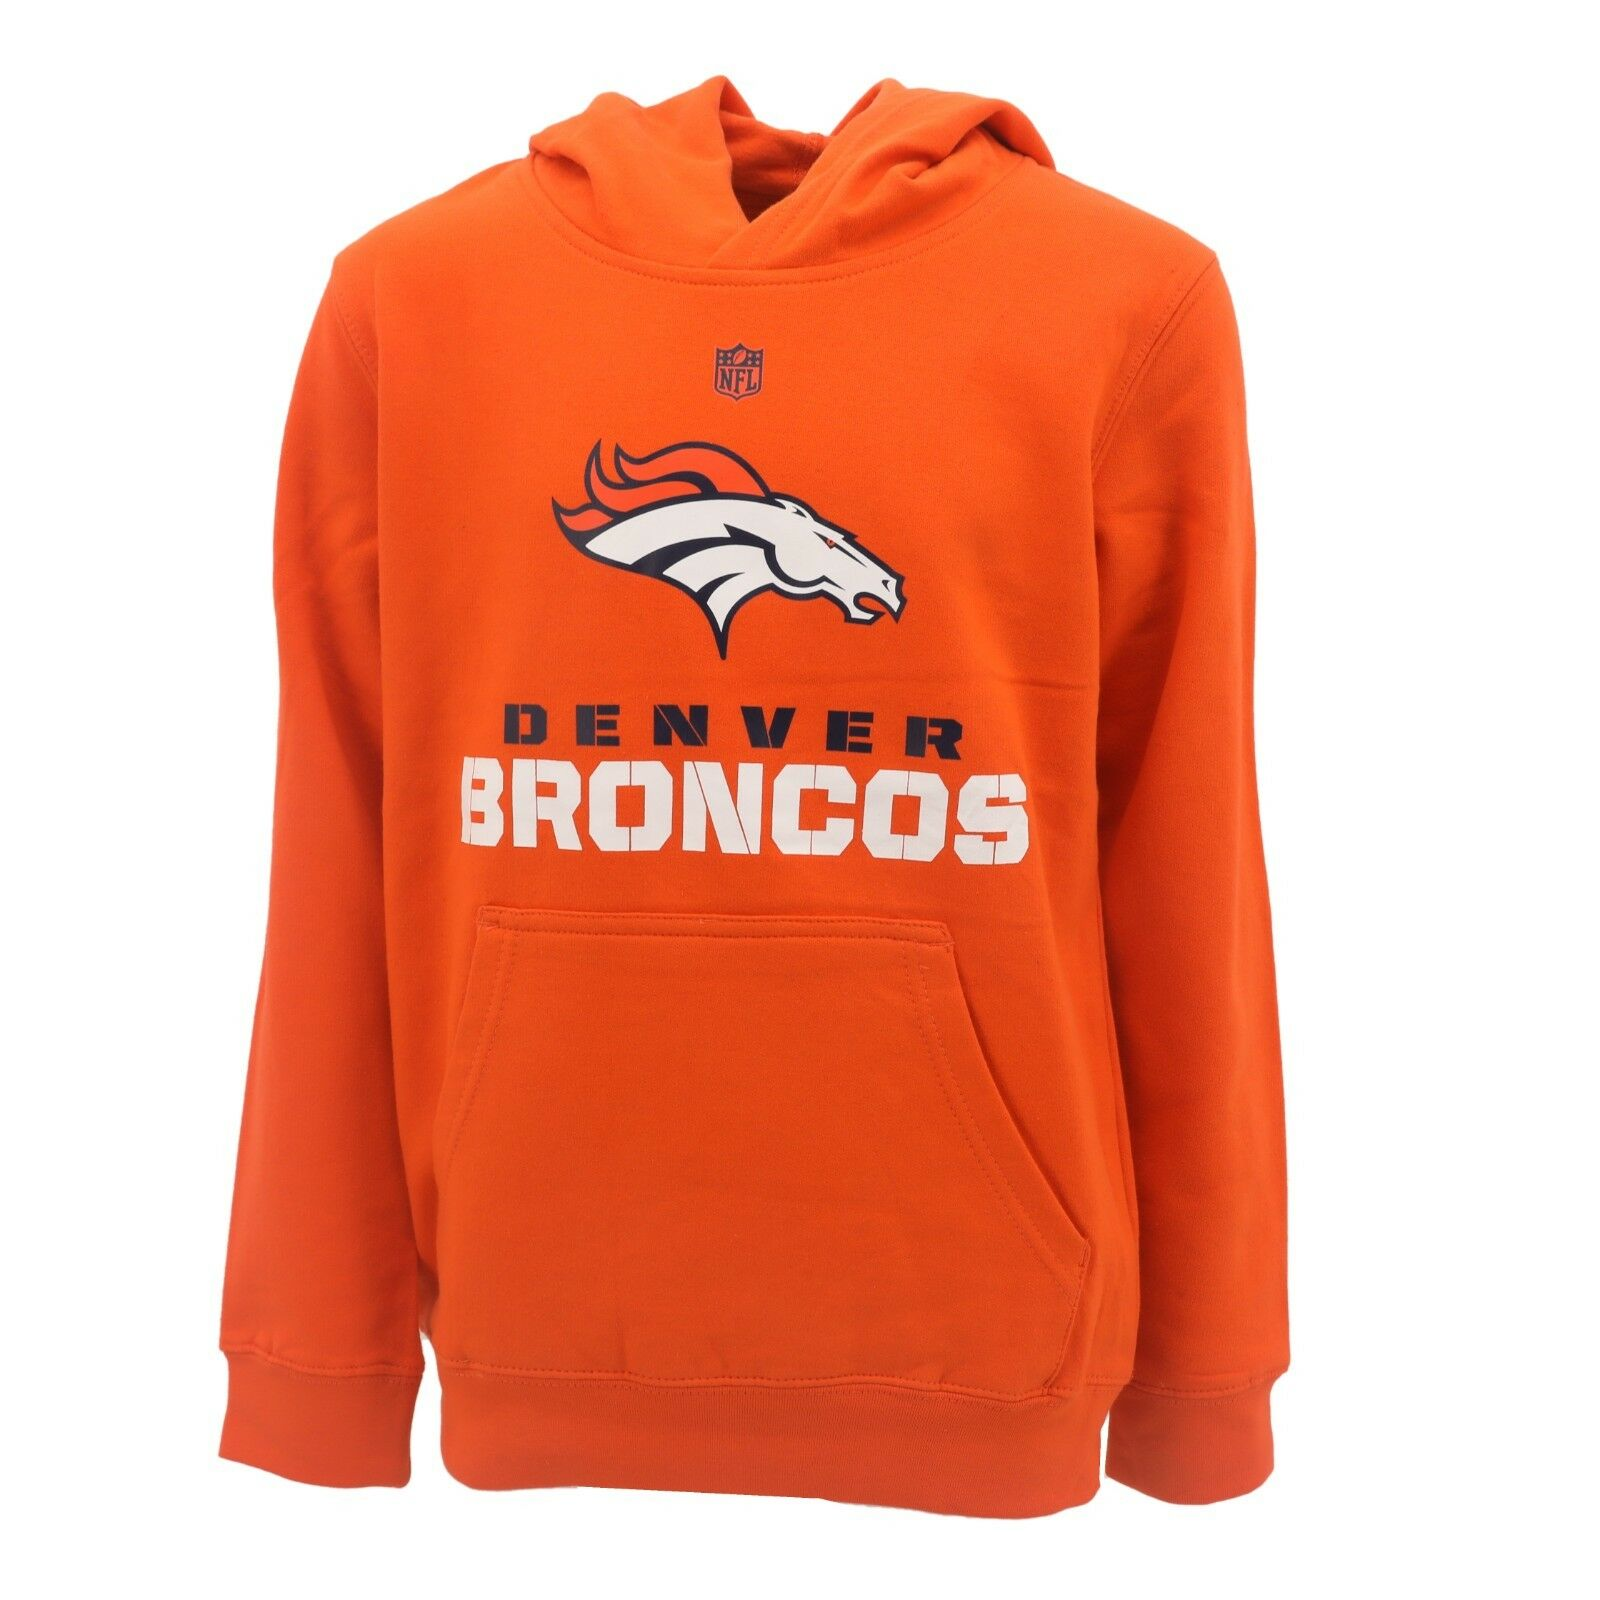 c0afd106 Details about Denver Broncos Official NFL Apparel Kids Youth Size Hooded  Sweatshirt New Tags